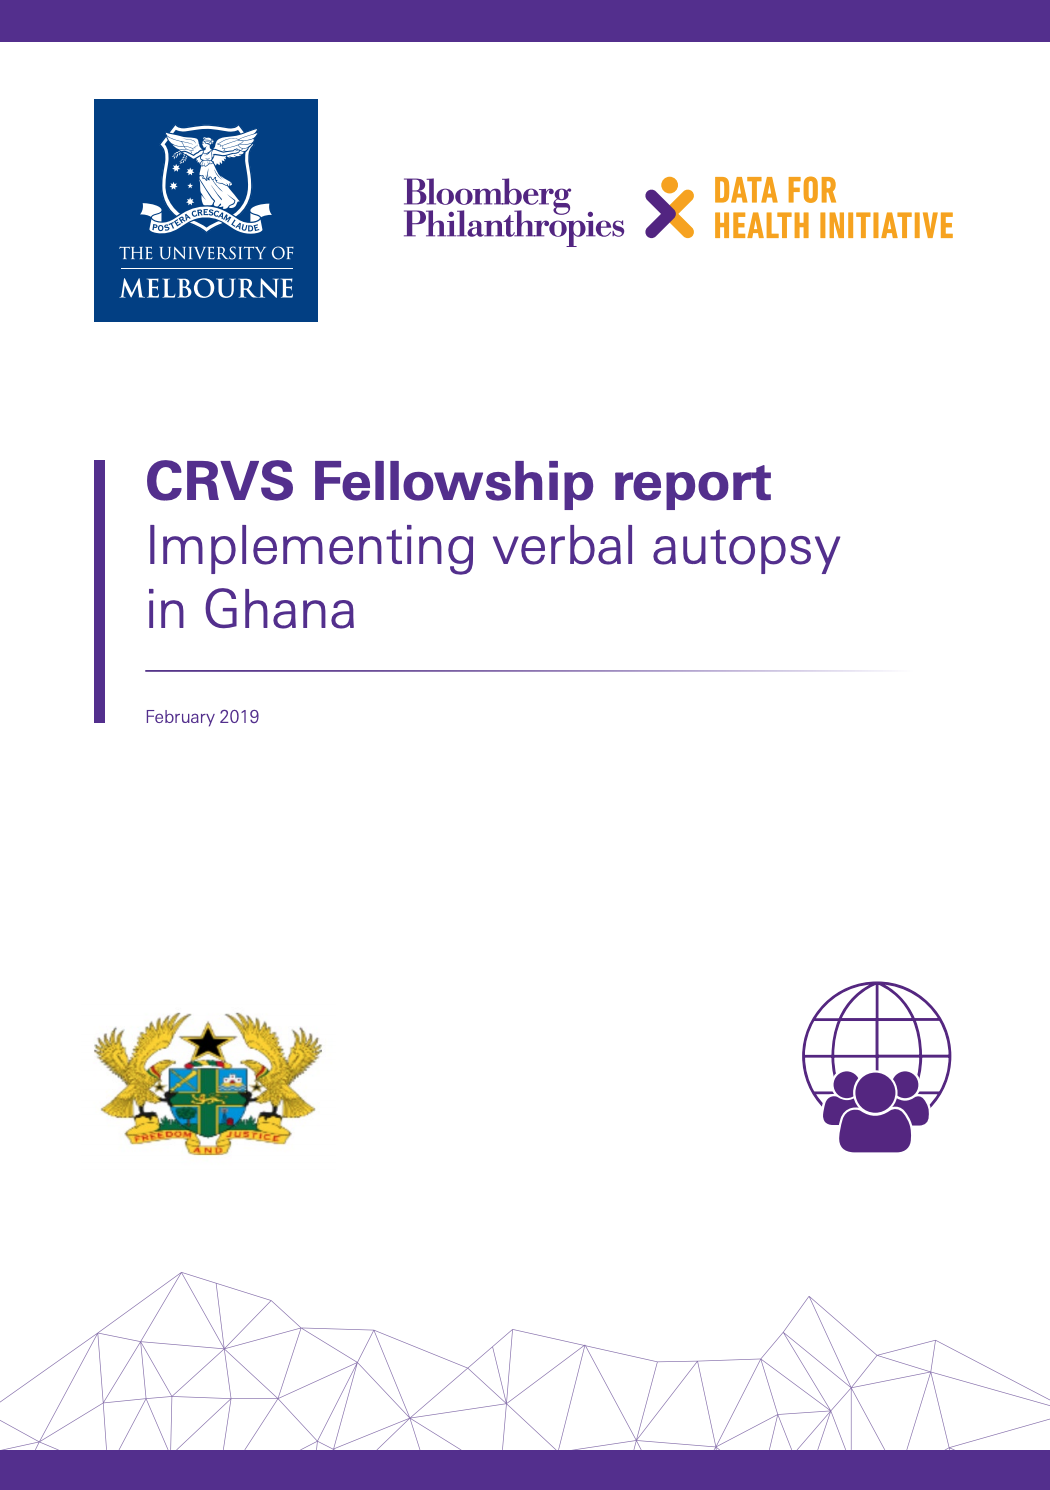 CRVS Fellowship profile Implementing verbal autopsy in Ghana thumnail